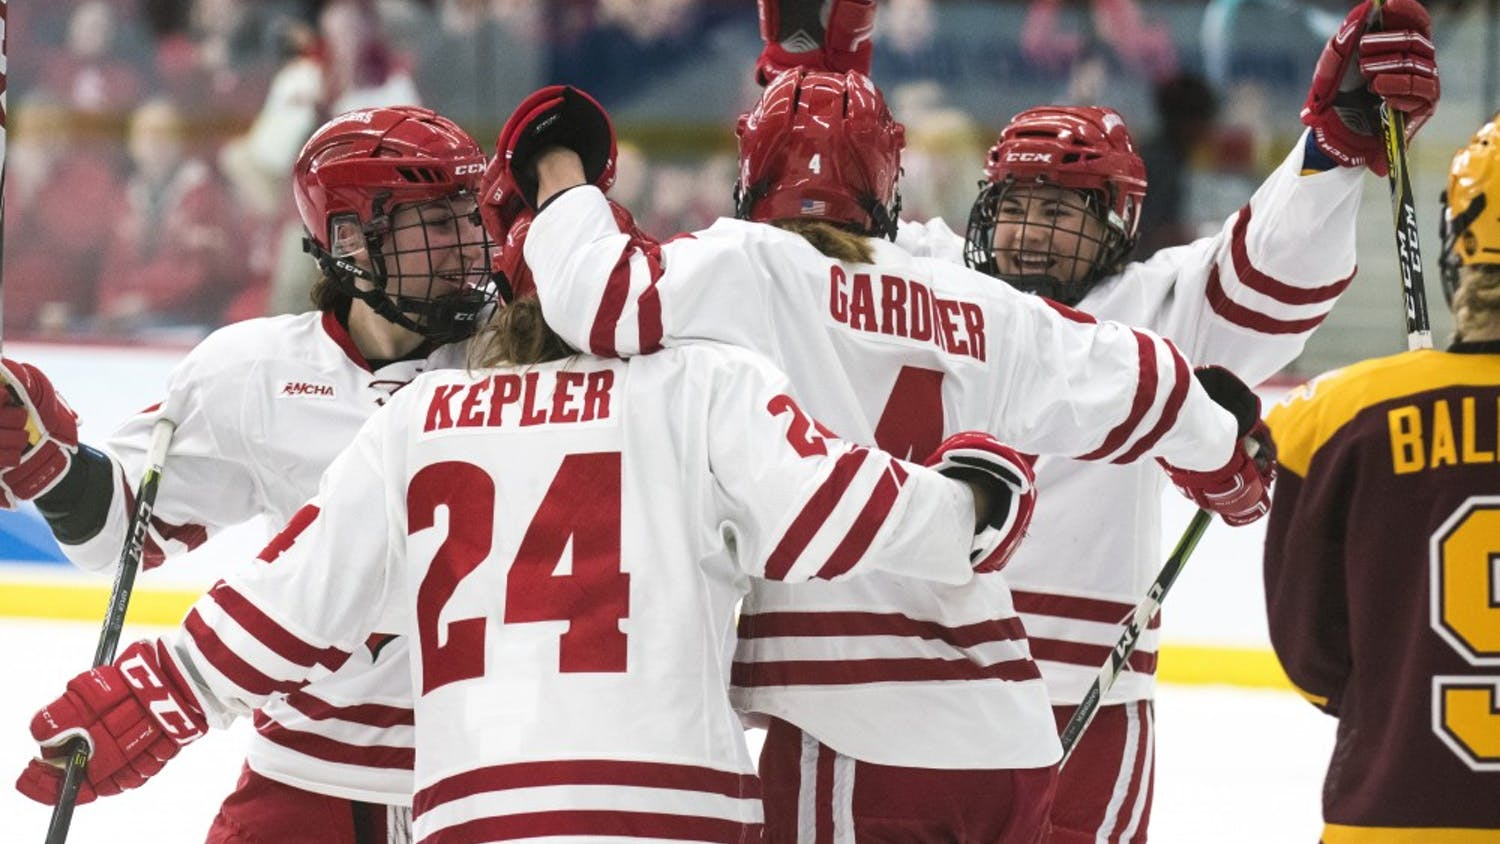 After winning the national championship last season, the Badgers have their sights set high again this year.